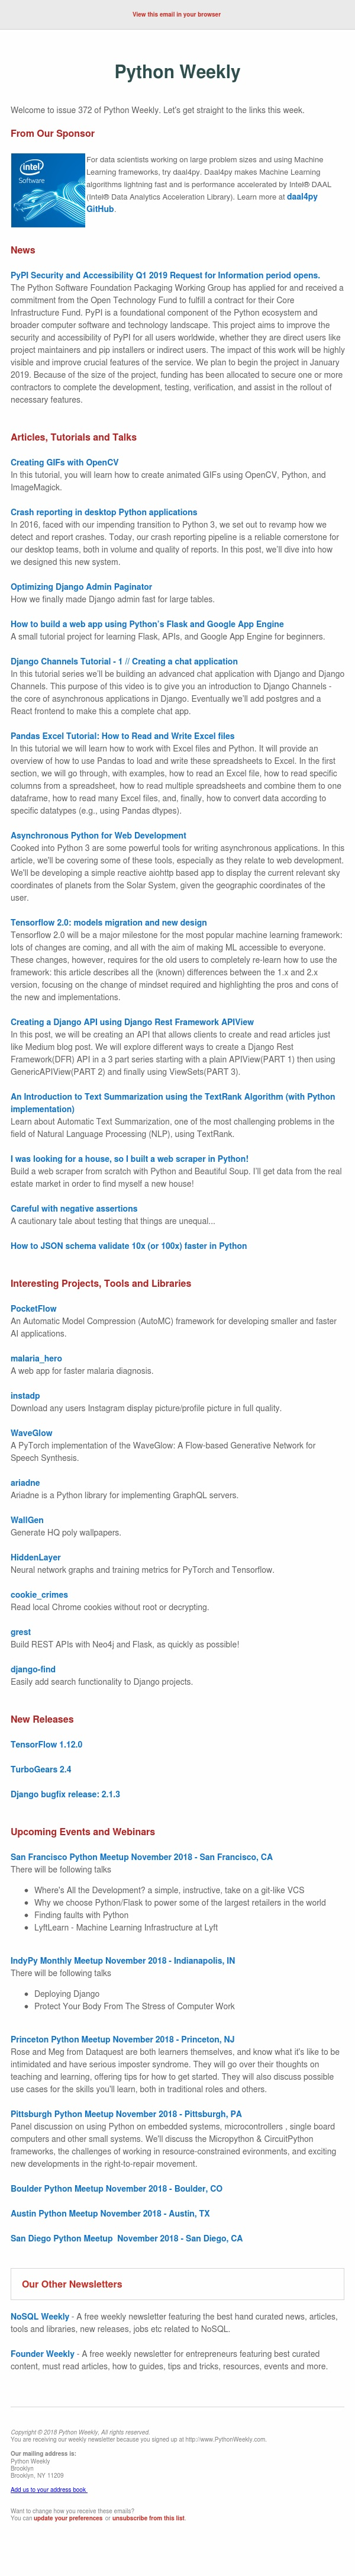 Python Weekly - Issue 372